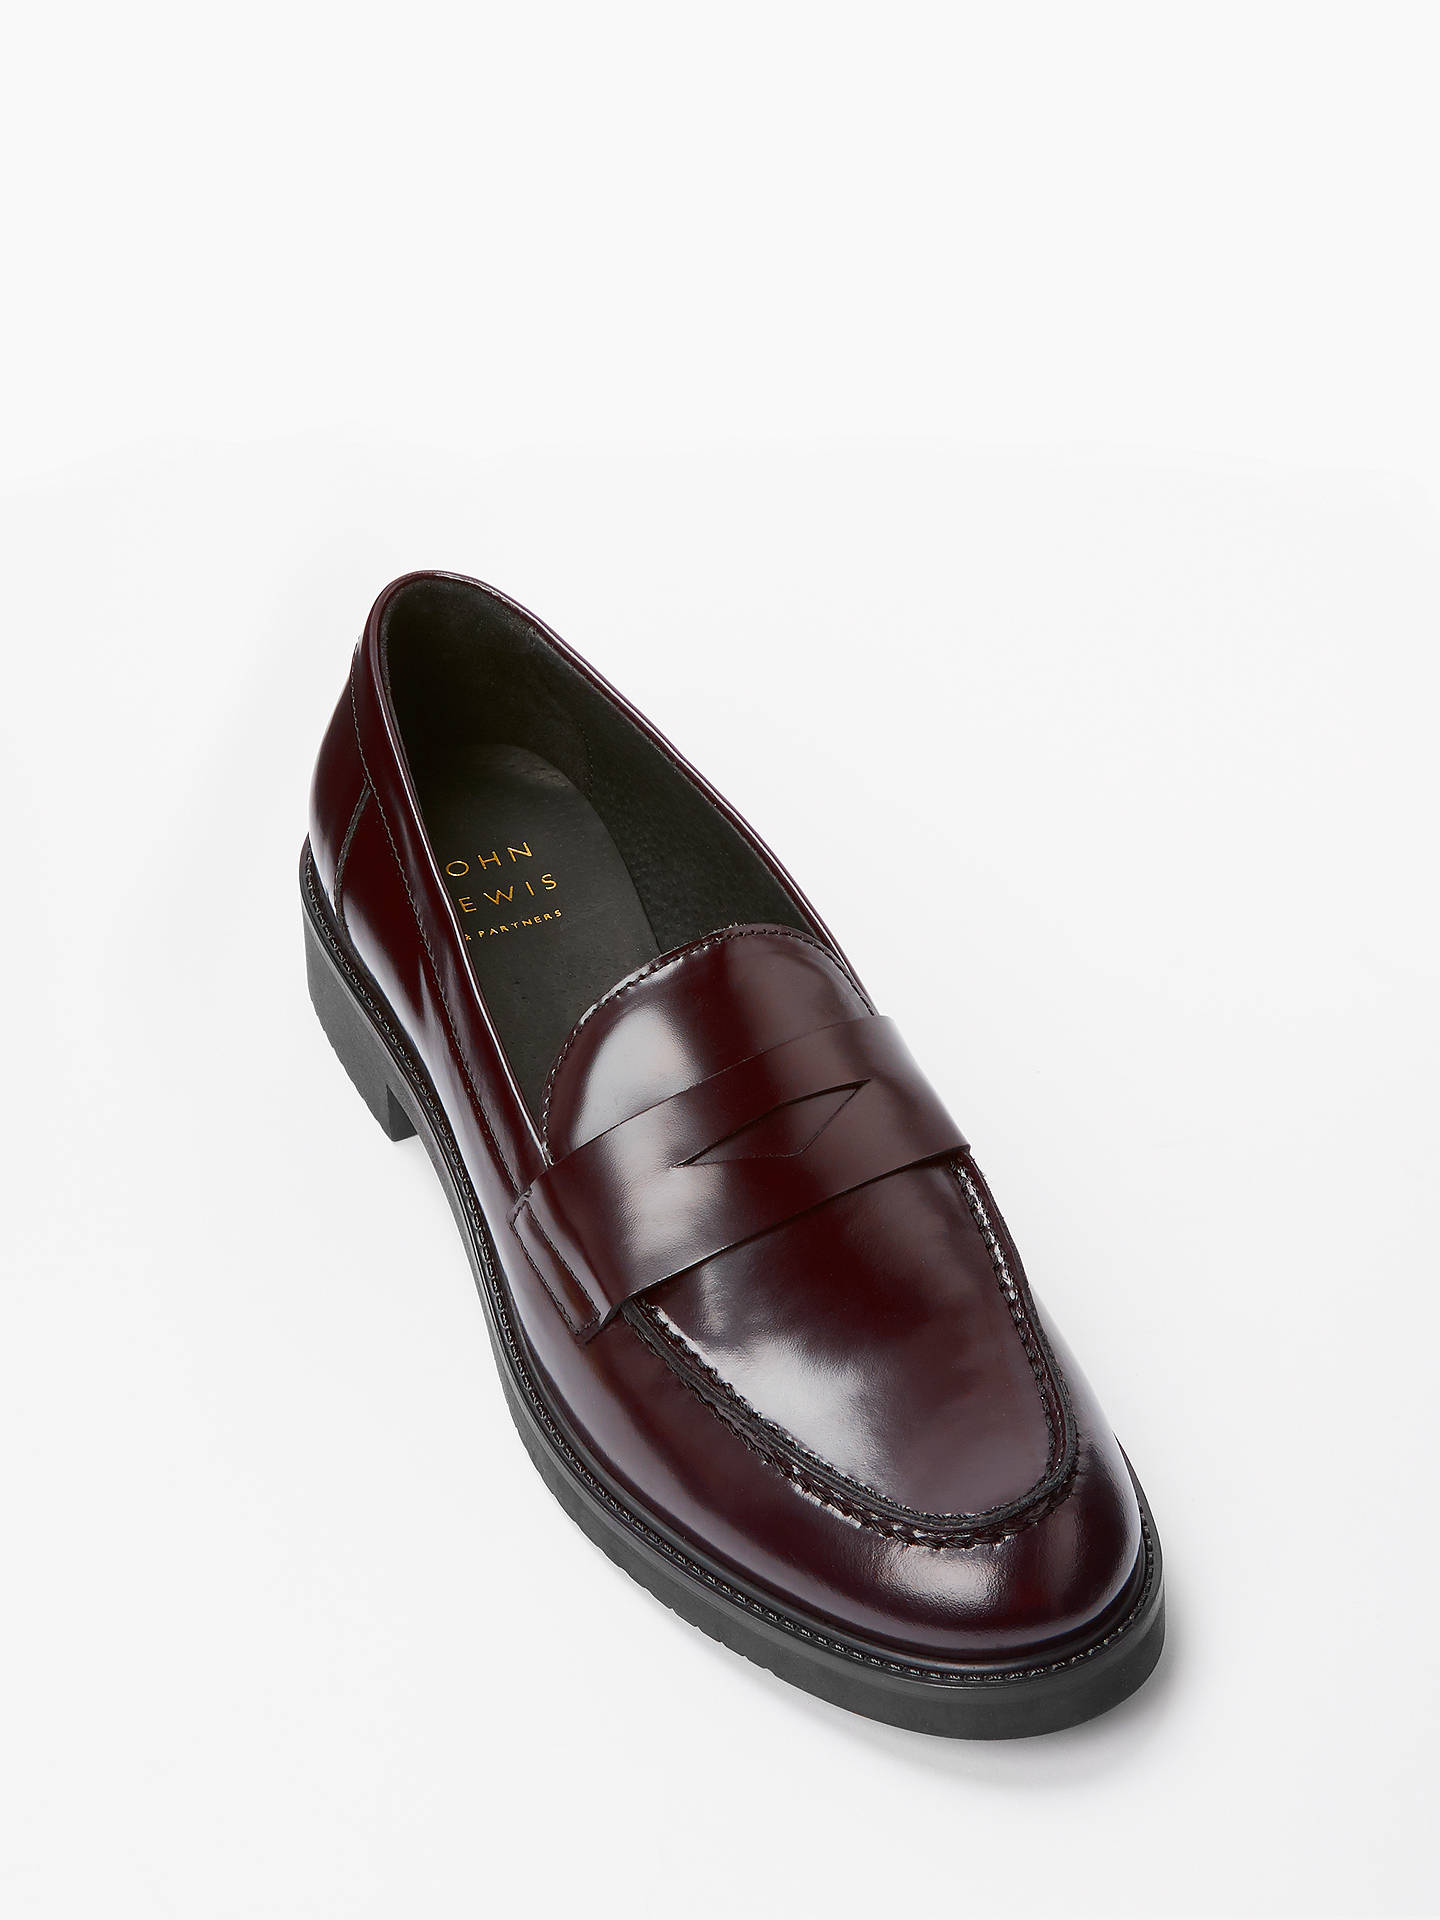 BuyJohn Lewis & Partners Georgia Leather Penny Loafers, Red Leather, 8 Online at johnlewis.com